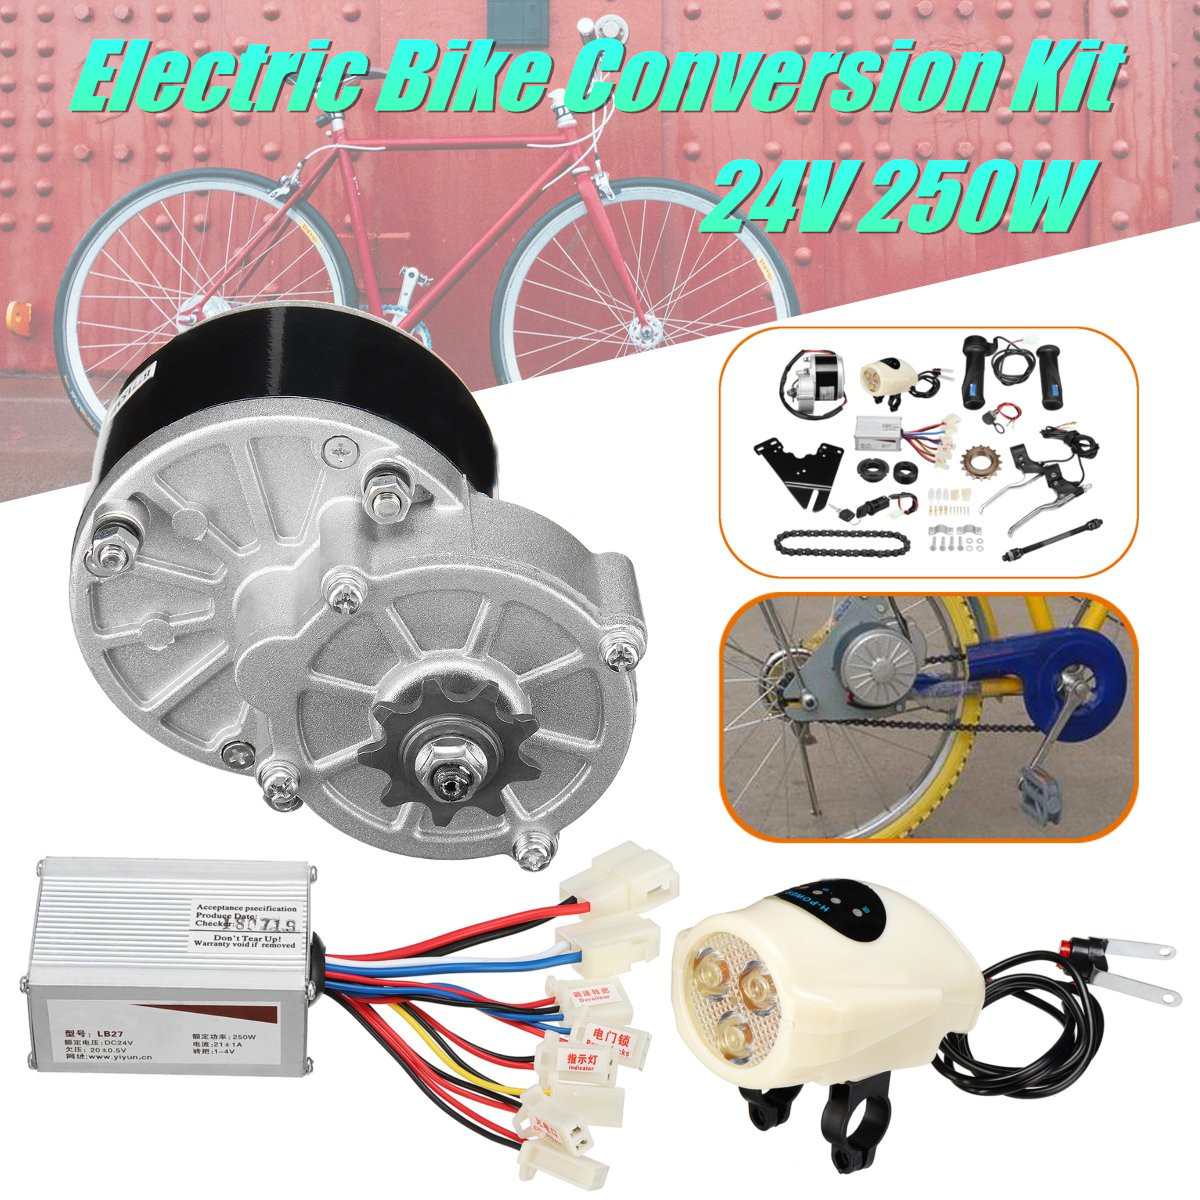 24V 250W Motor Speed Control Switch Electric Bike Kit Electric Bicycle Conversion Kit for Ordinary Common Electric Bicycle car styling interior speaker audio ring cover decoration trim for mitsubishi asx outlander sport us 2013 2014 2015 2016 page 8